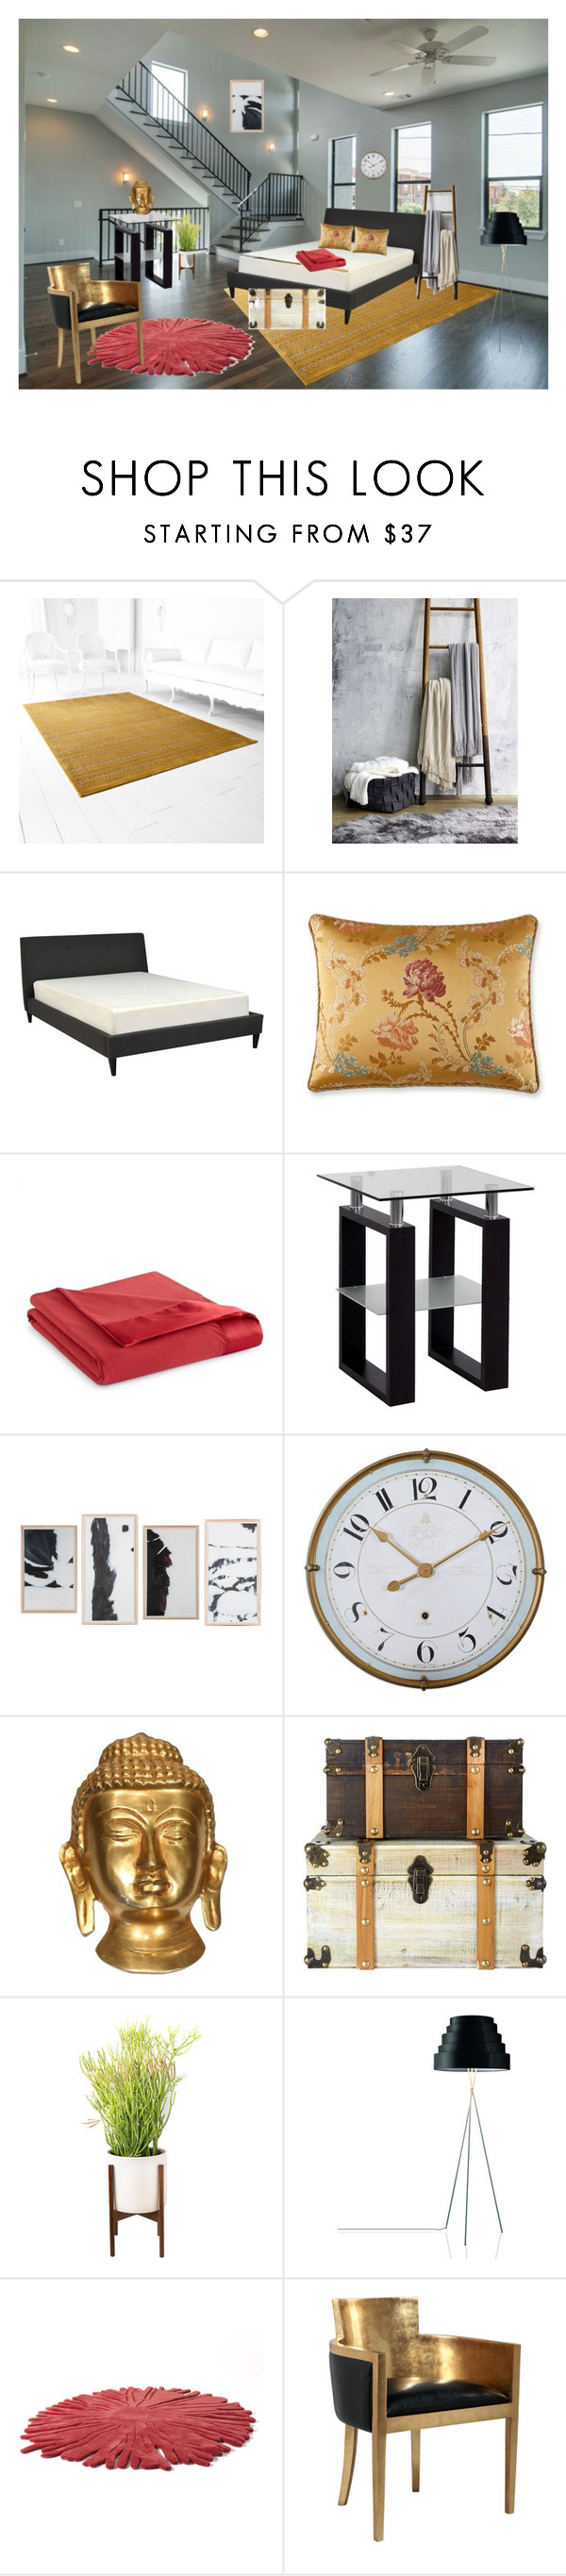 """""""Sin título #251"""" by anyhichins ❤ liked on Polyvore featuring interior, interiors, interior design, home, home decor, interior decorating, Cyan Design, UGG Australia, Waterford and Alouette"""